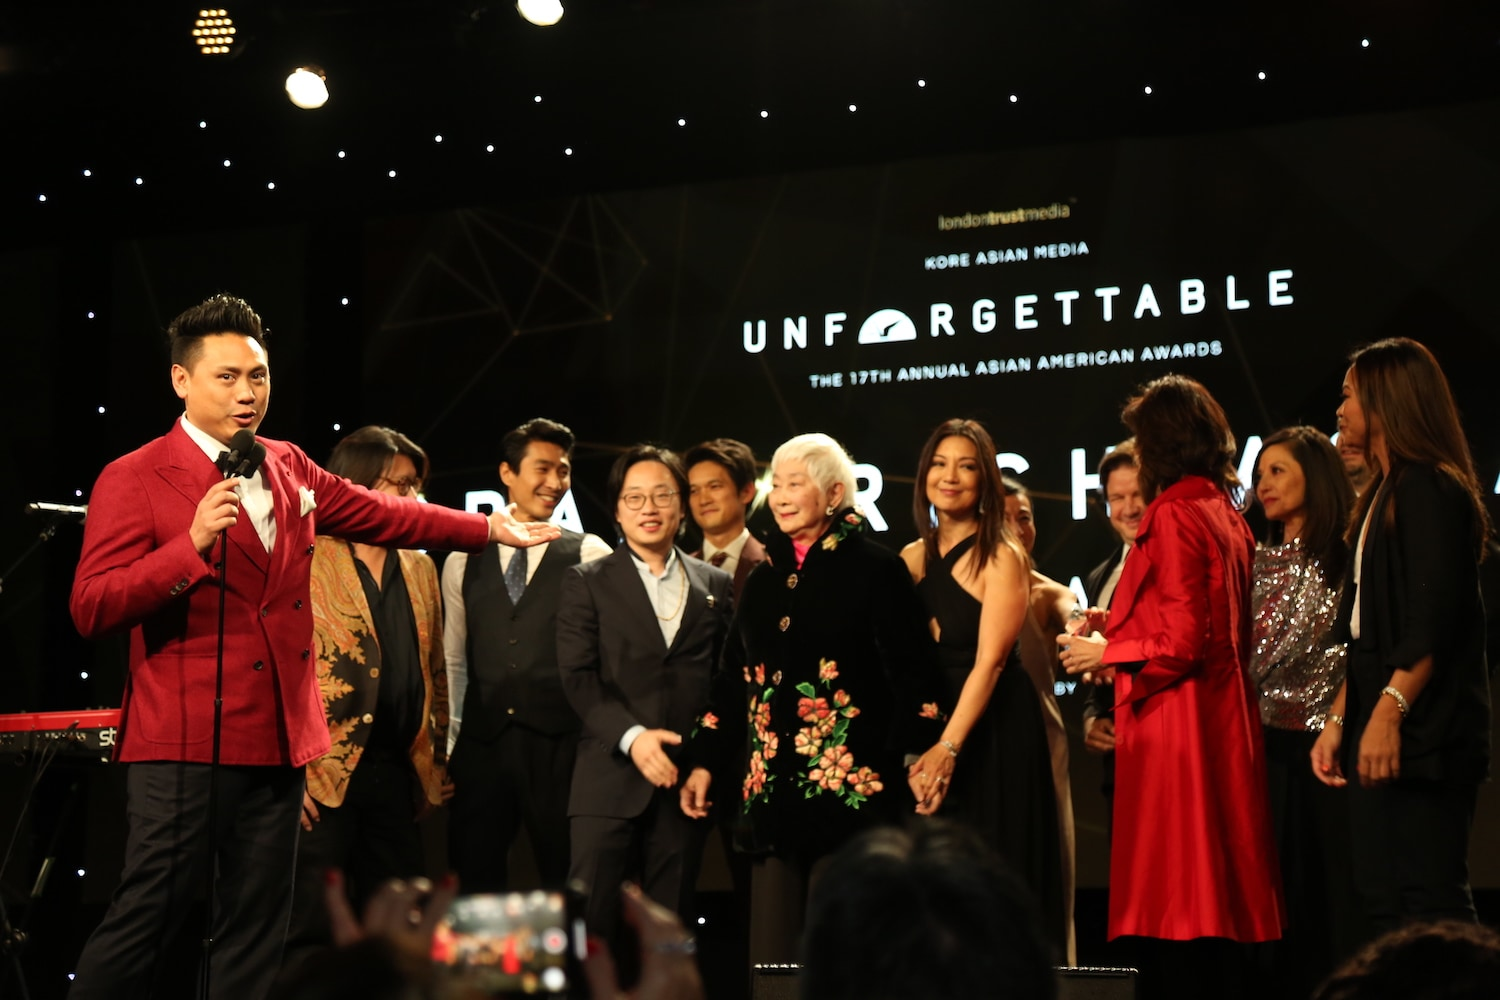 Actors on stage at the Unforgettable Gala